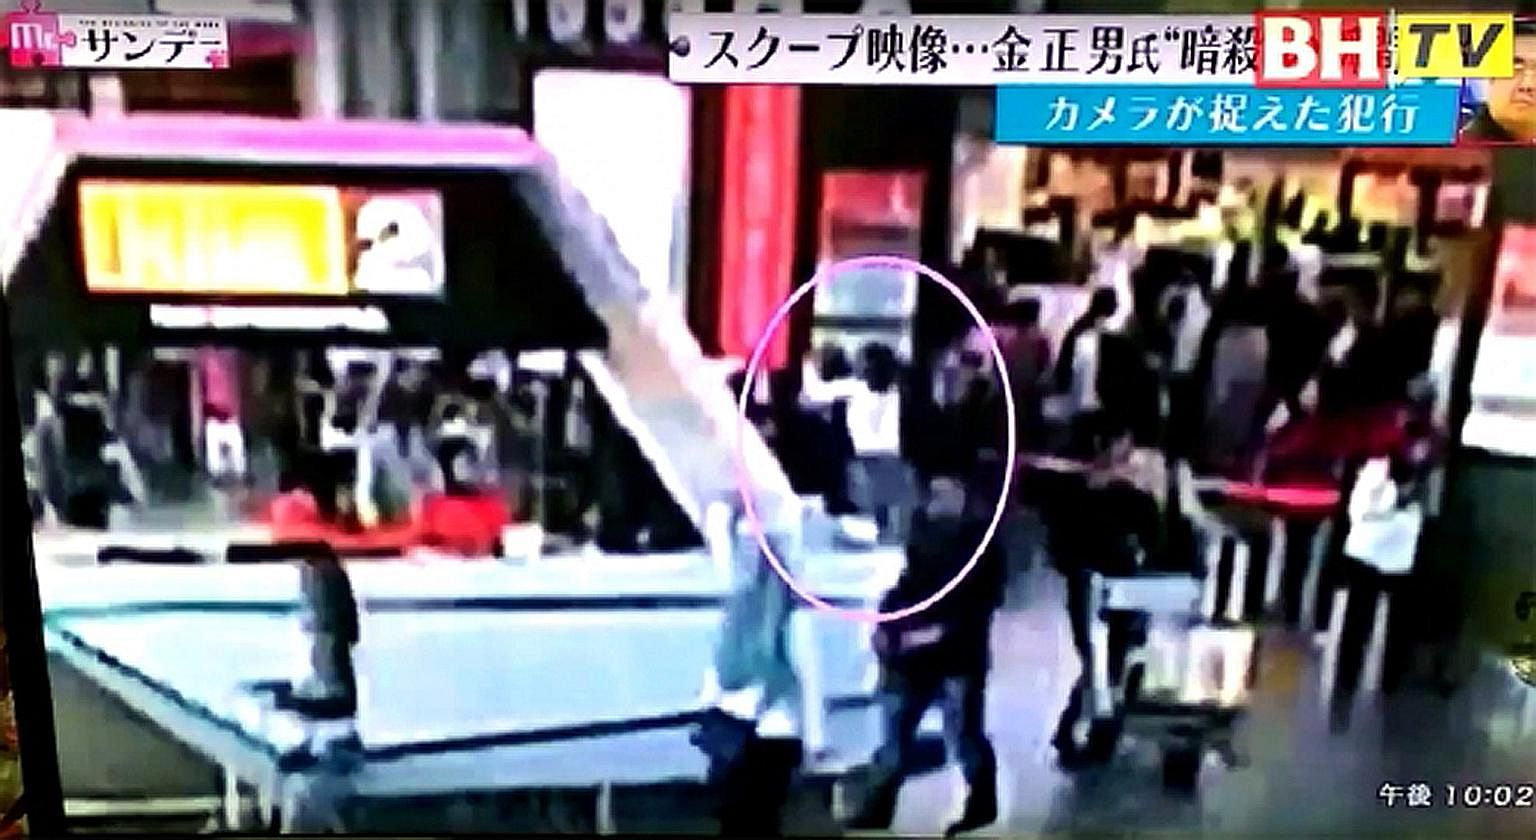 Screen grabs of grainy video clips supposedly showing Mr Kim Jong Nam (circled in photo on the left) and the woman suspect (right) linked to his death at the Kuala Lumpur International Airport in February 2017.